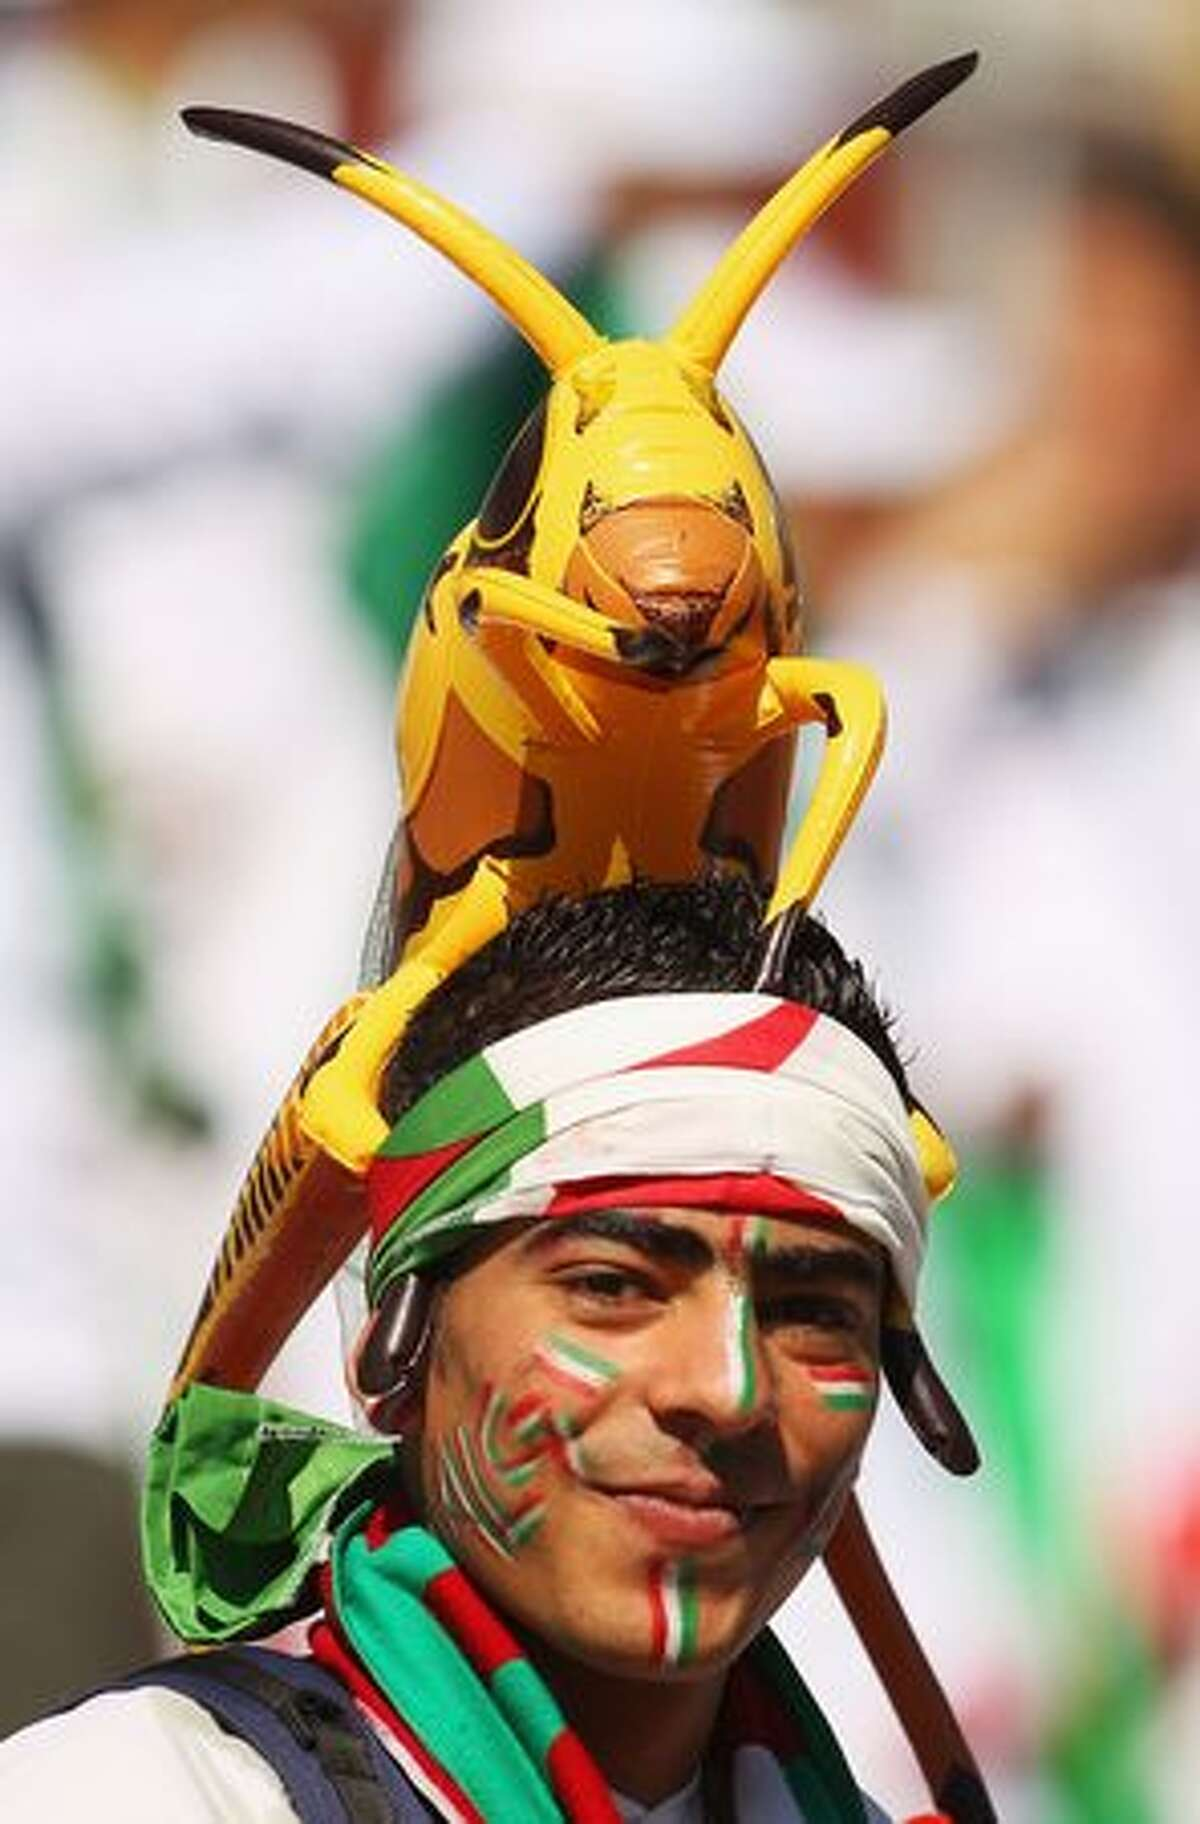 An Algeria fan arrives for the 2010 FIFA World Cup South Africa Group C match between Algeria and Slovenia.